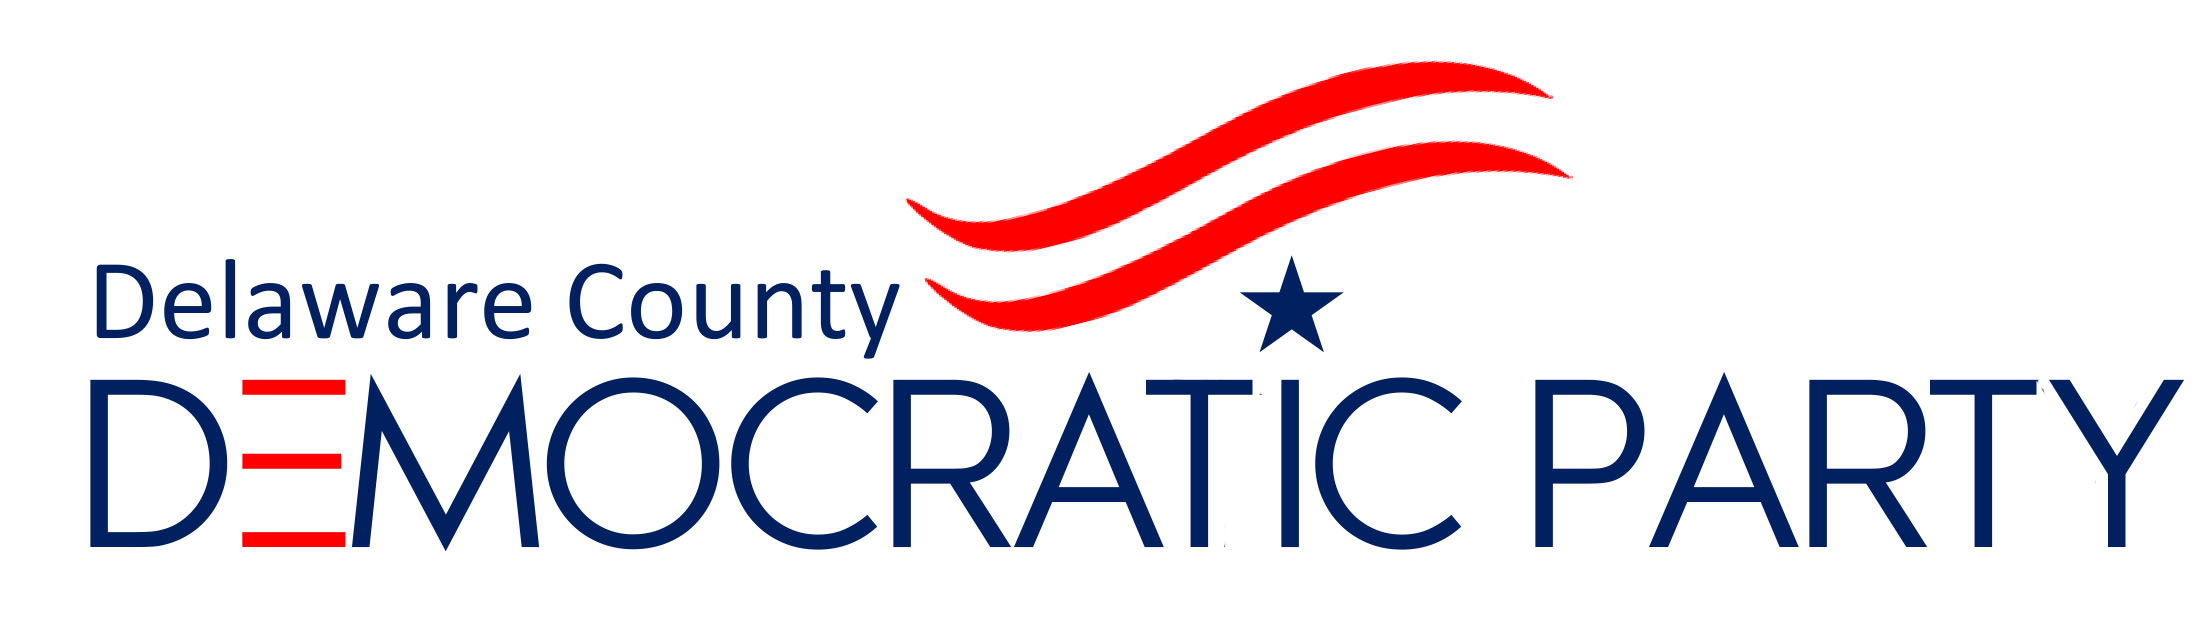 Delaware County Democratic Party (OH)